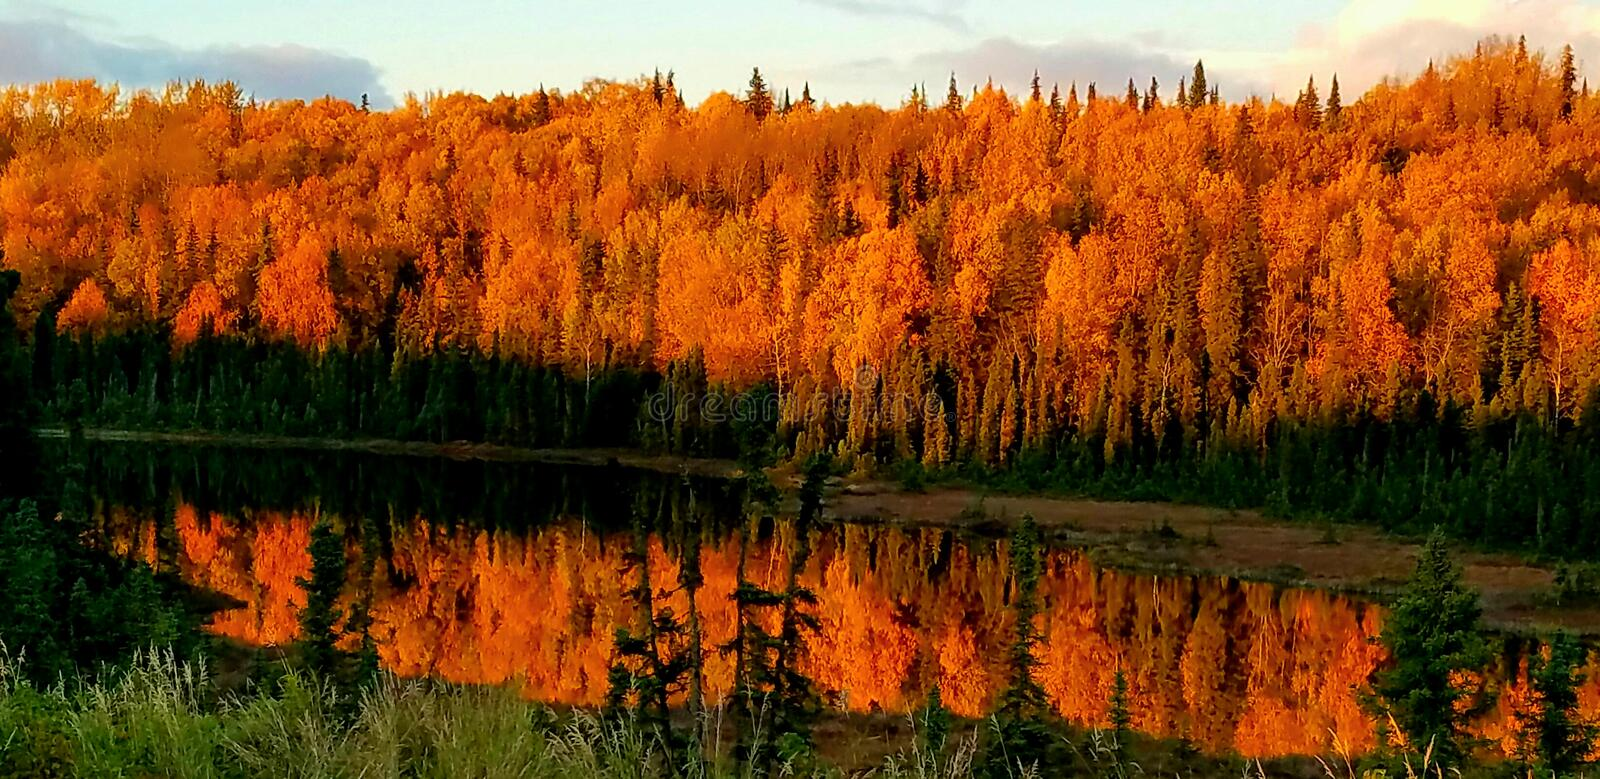 Autumn in kasilof alaska. You can see the autumn foilage in alaska royalty free stock image